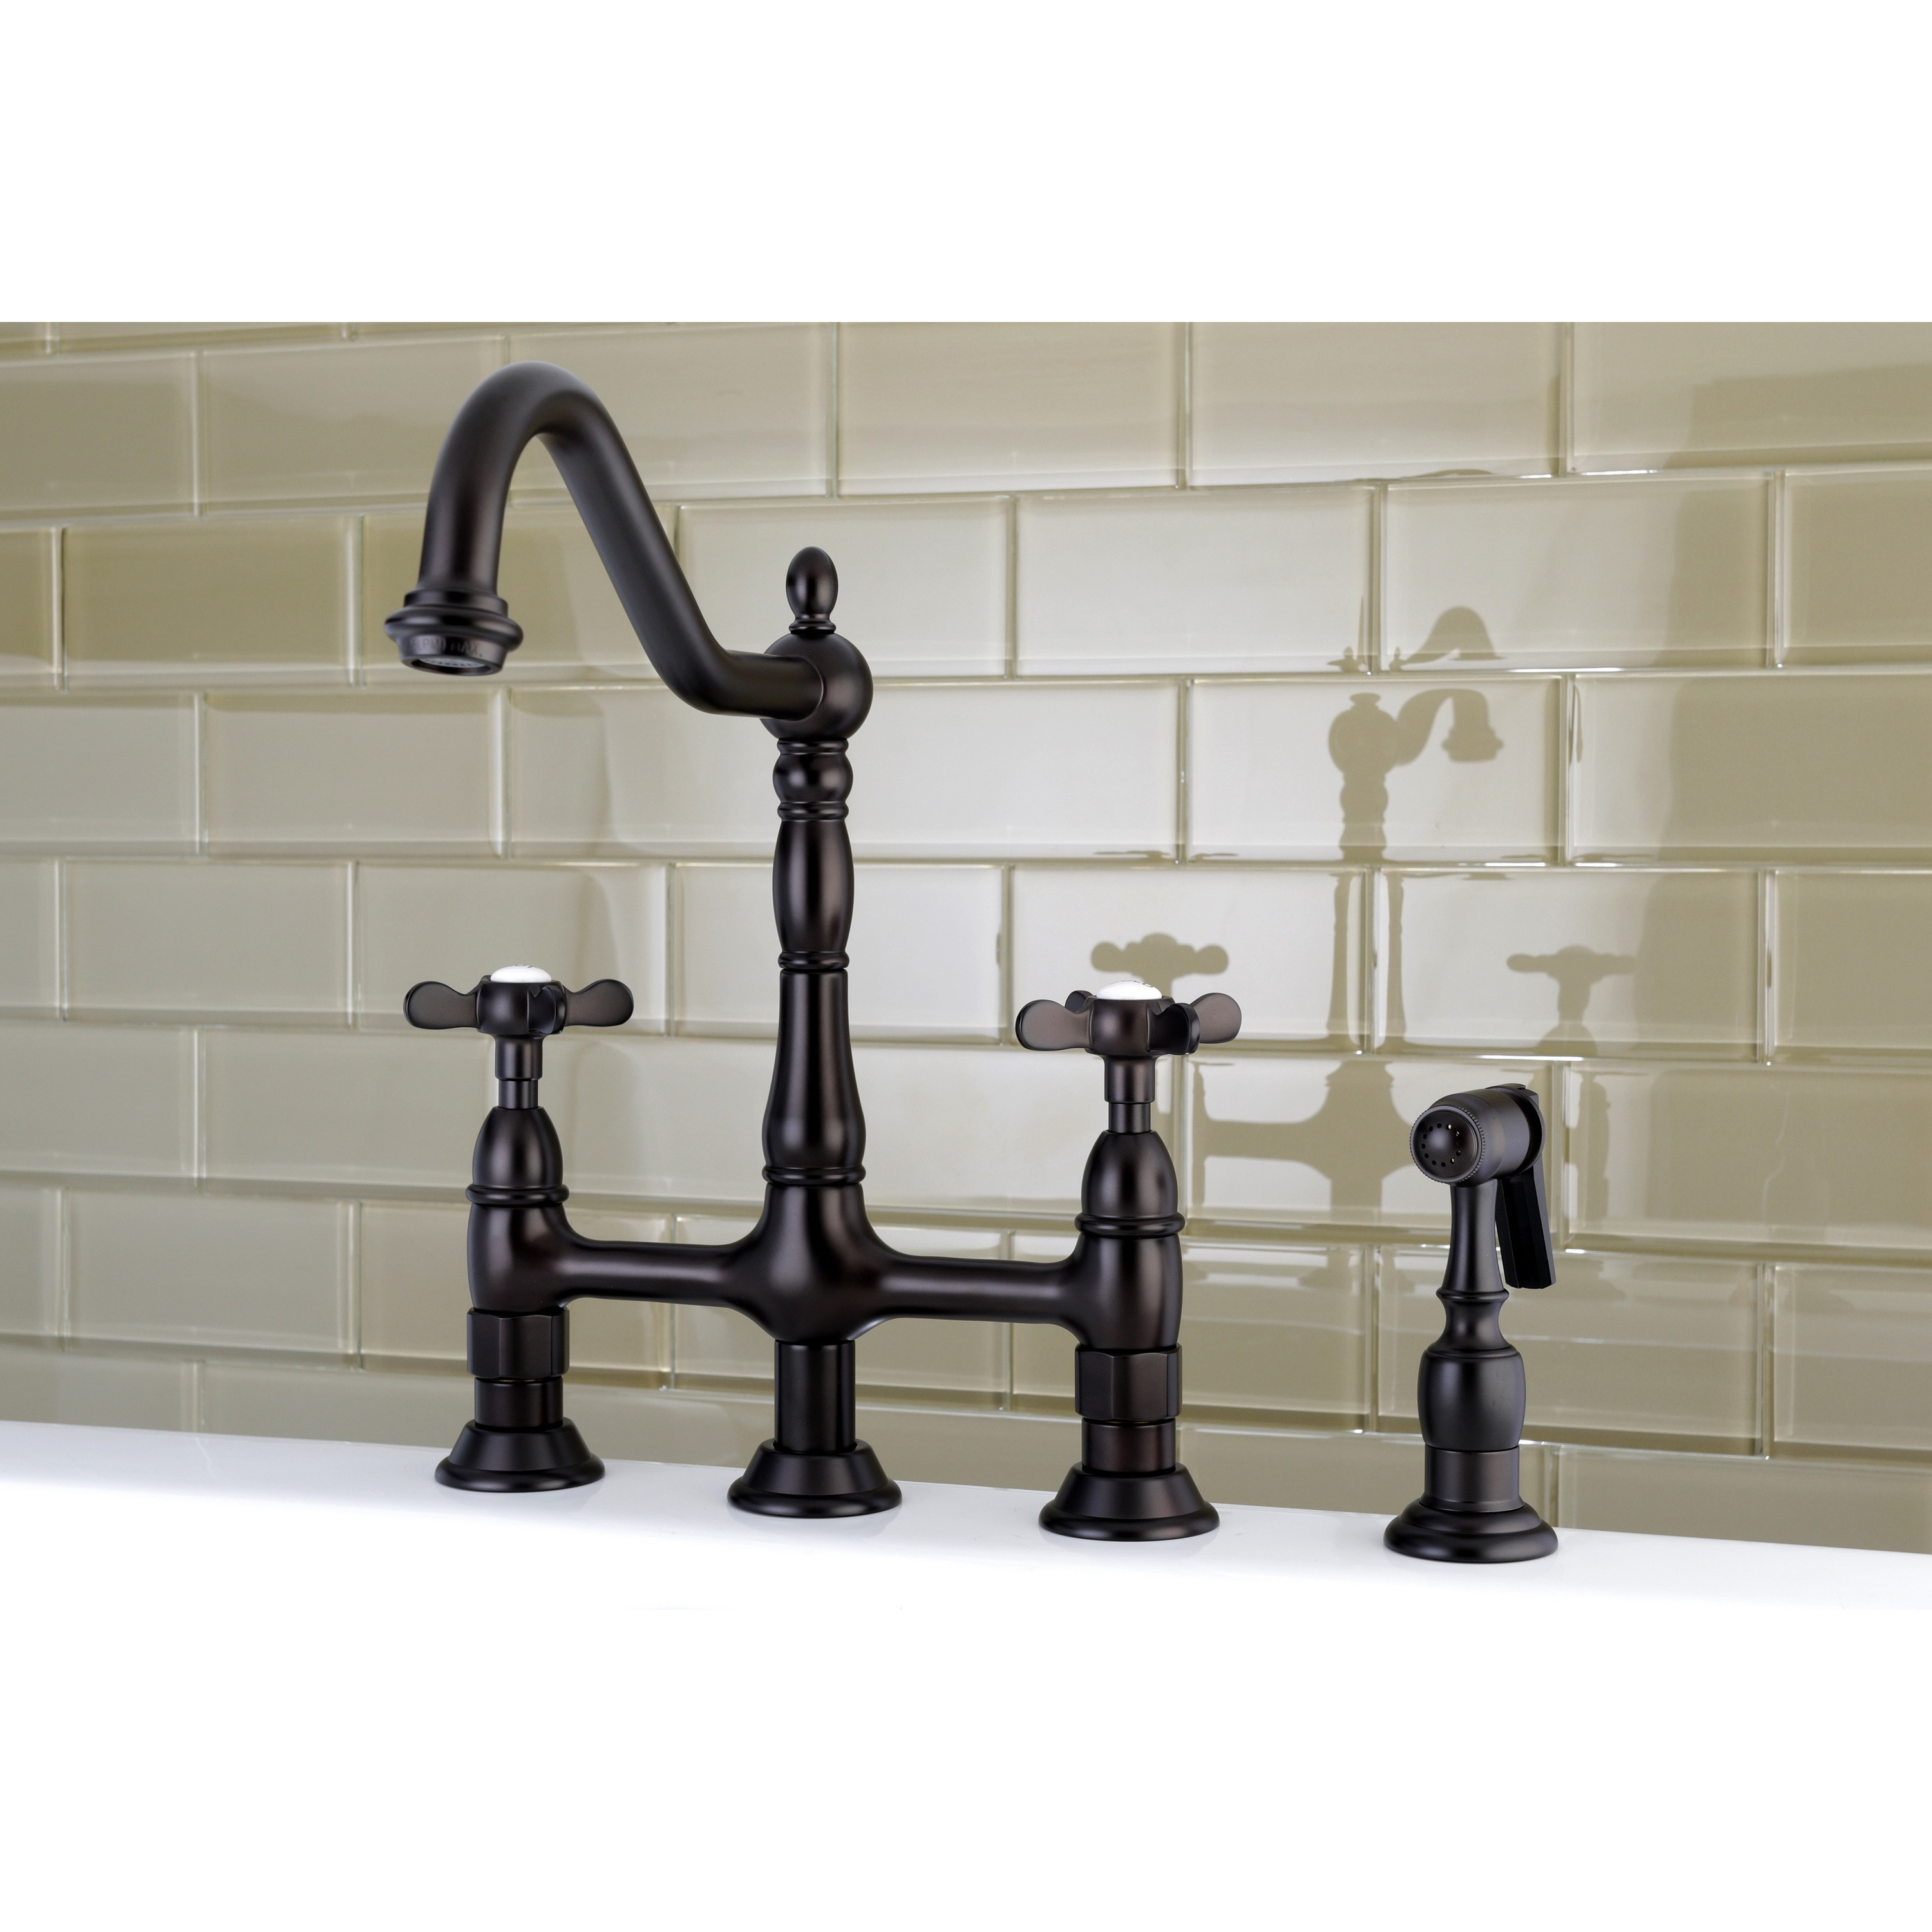 bowl oil sink double basin lovable bridge faucets faucet gorgeous ideas design sinks rubbed of kitchen copper amazing farmhouse bronze undermount